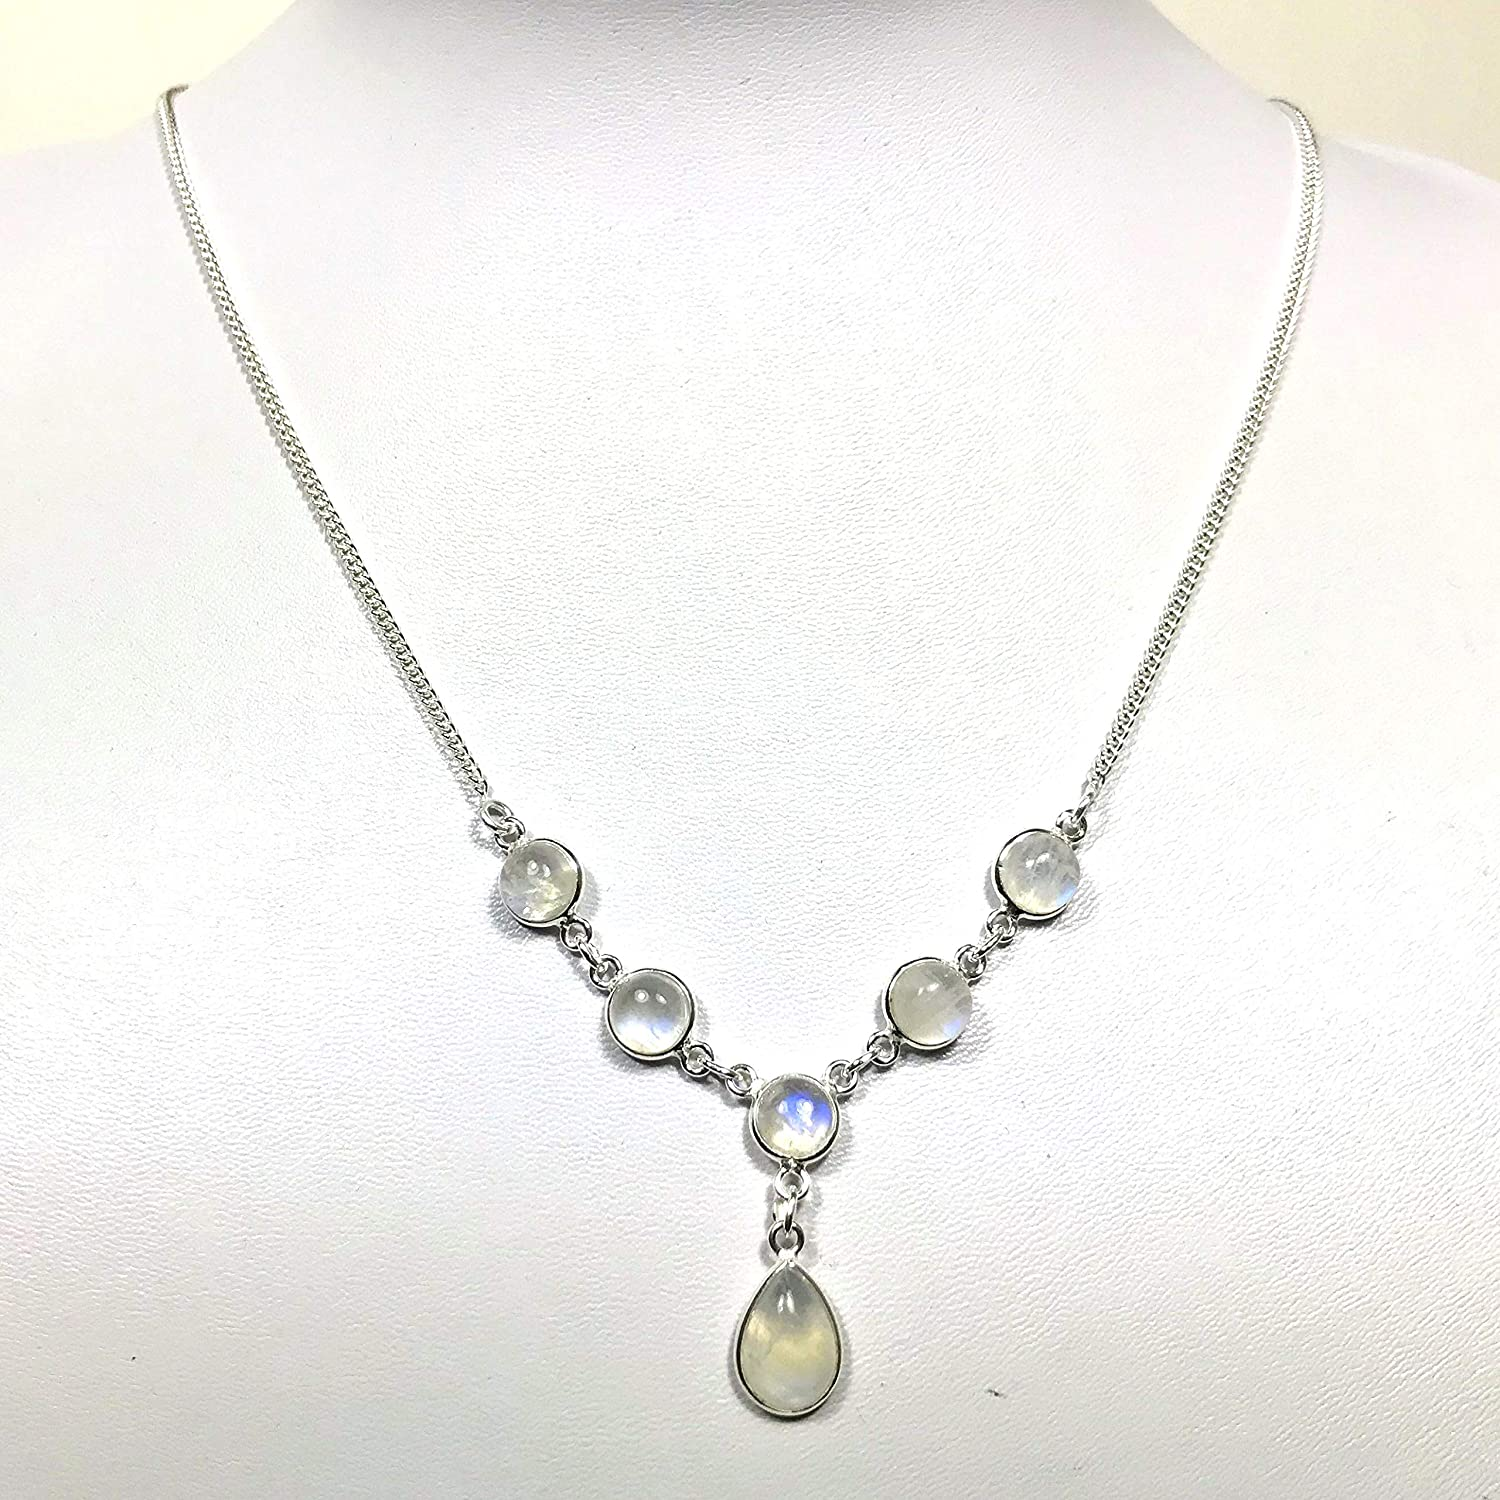 Rainbow moonstone and sterling silver Sterling silver necklace with Rainbow moonstone pendant Rainbow moonstone bezel pendant necklace